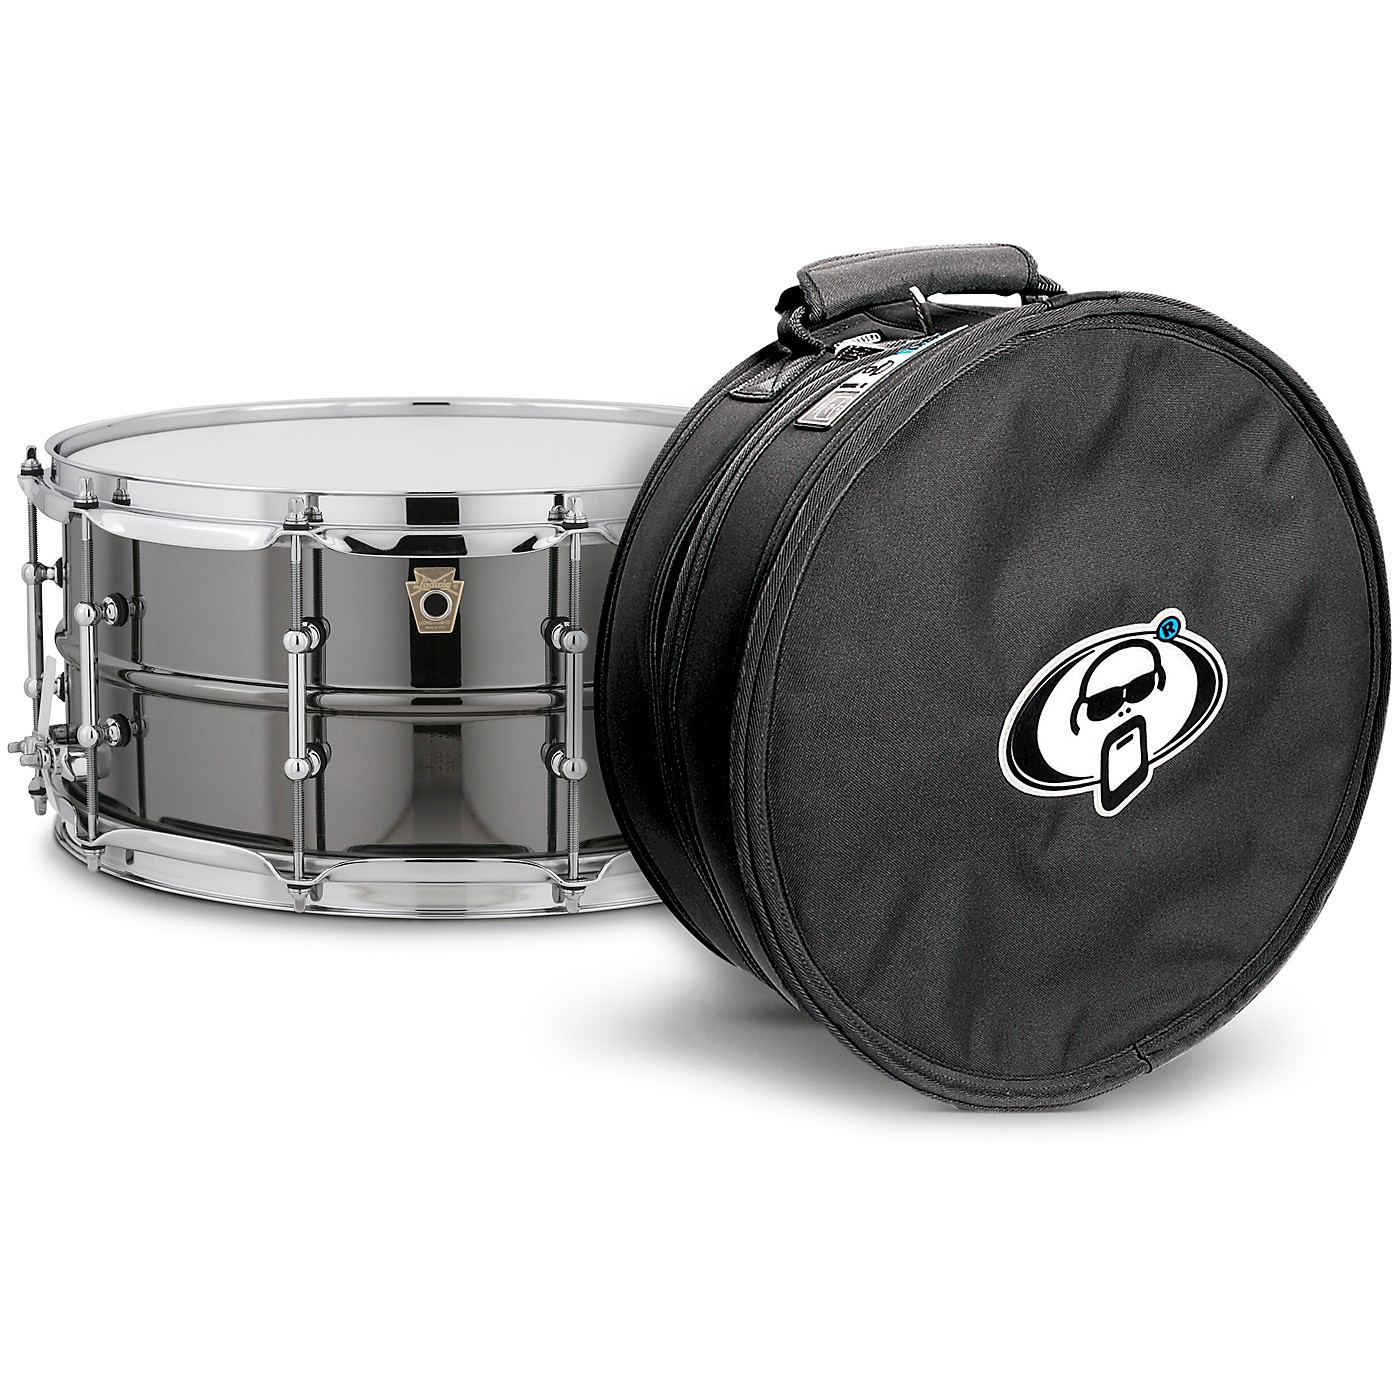 Ludwig Black Beauty Snare Drum with Tube Lugs and Protection Racket Case thumbnail